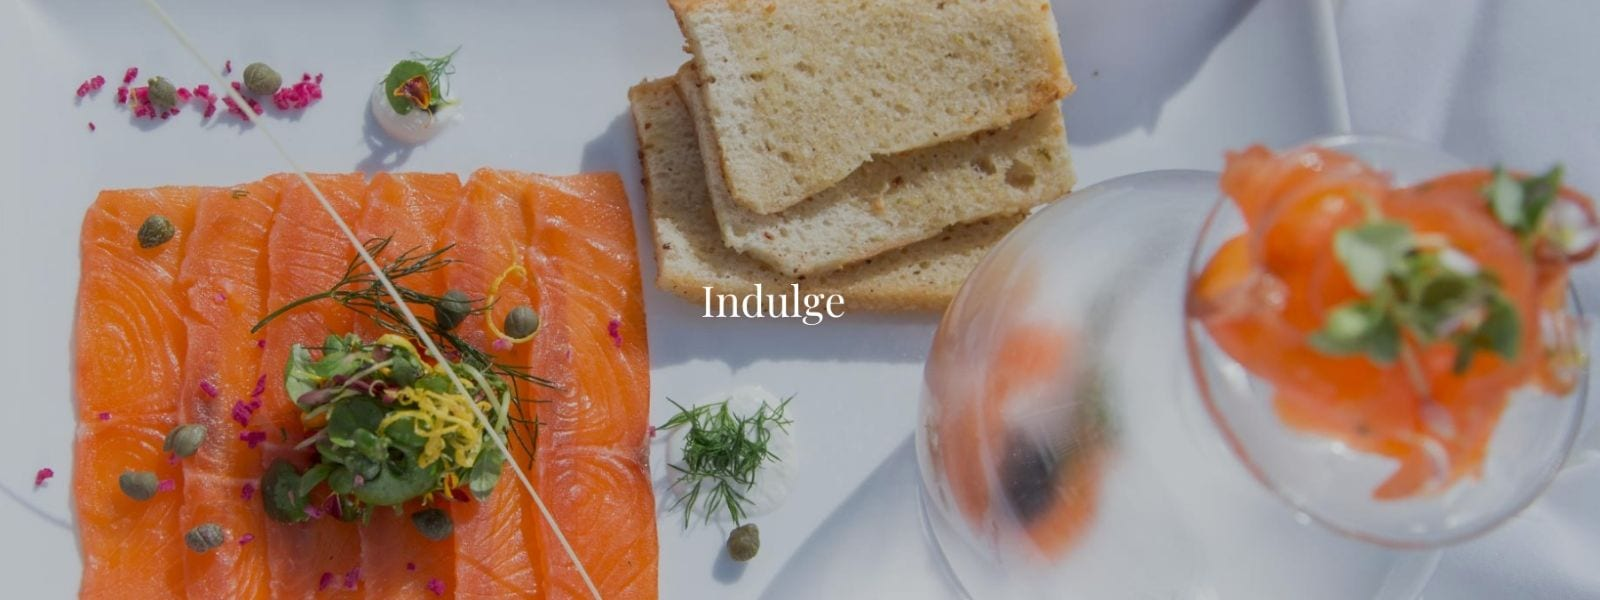 Salmon and bread displayed on a plate with the word Indulge